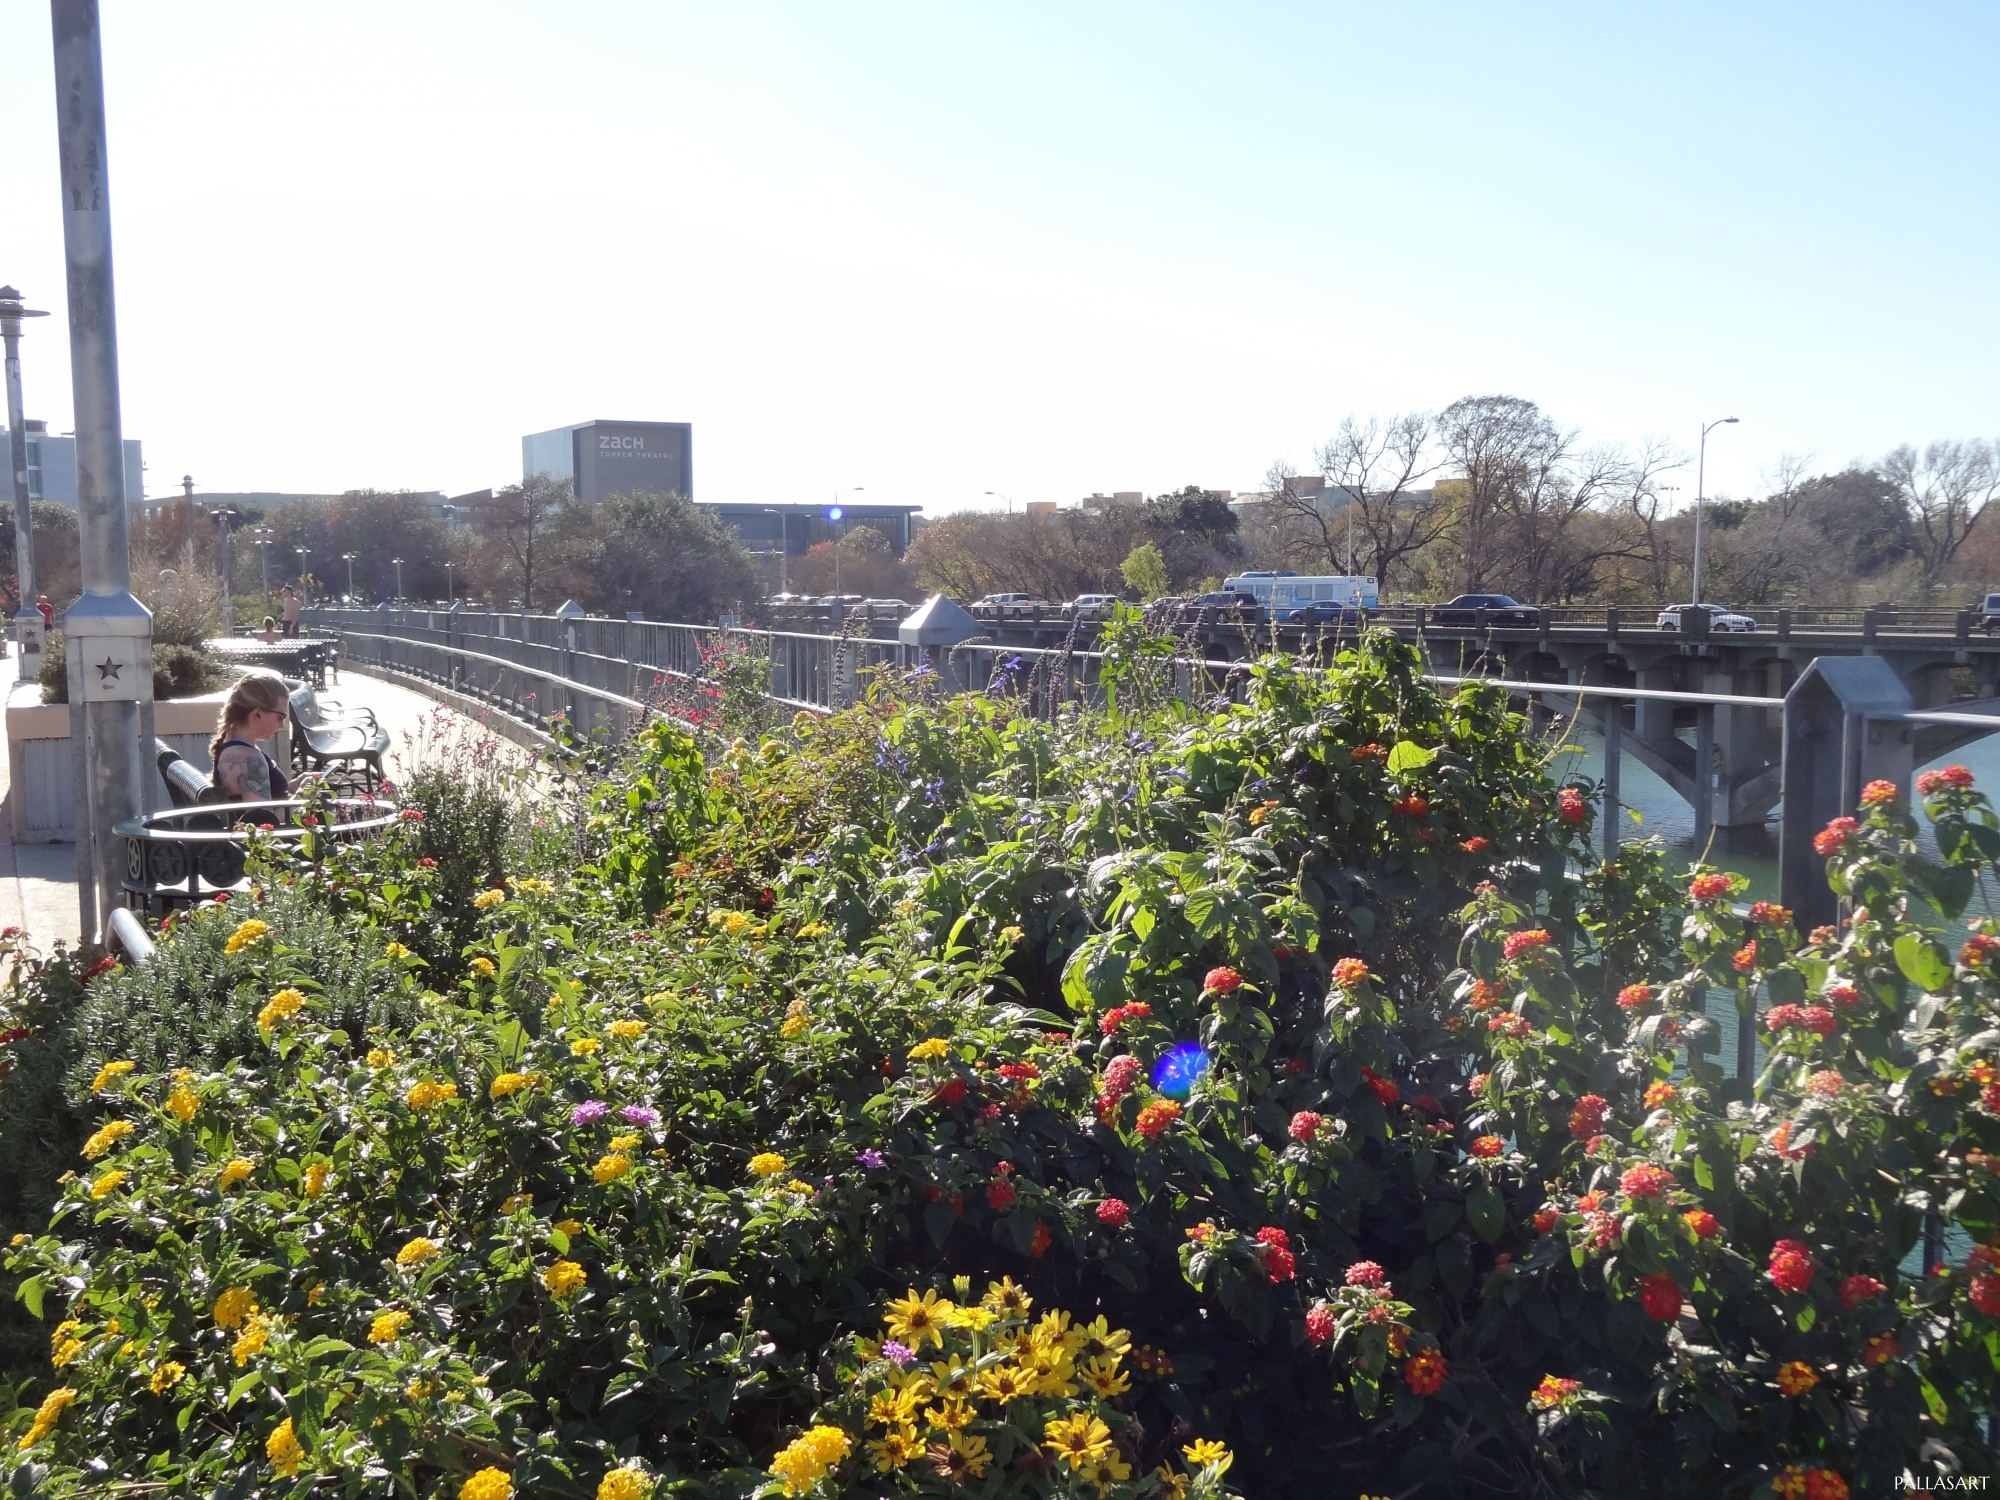 Flowers on Lamar Pedestrian Bridge in Austin, TX